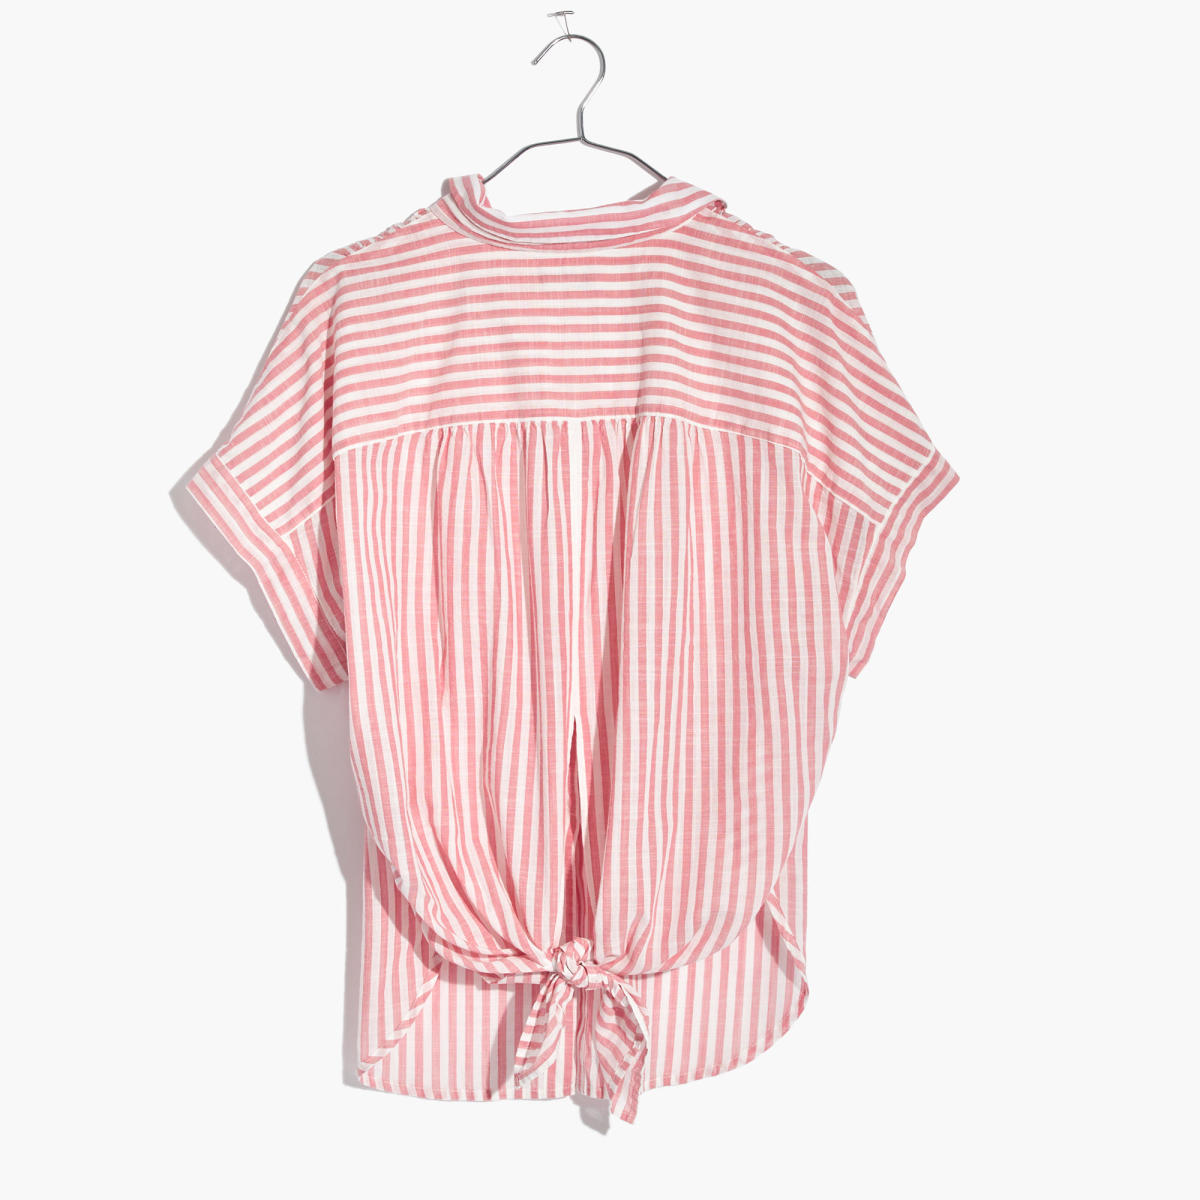 Tie-back shirt in rose stripe, $69.50, available at Madewell.